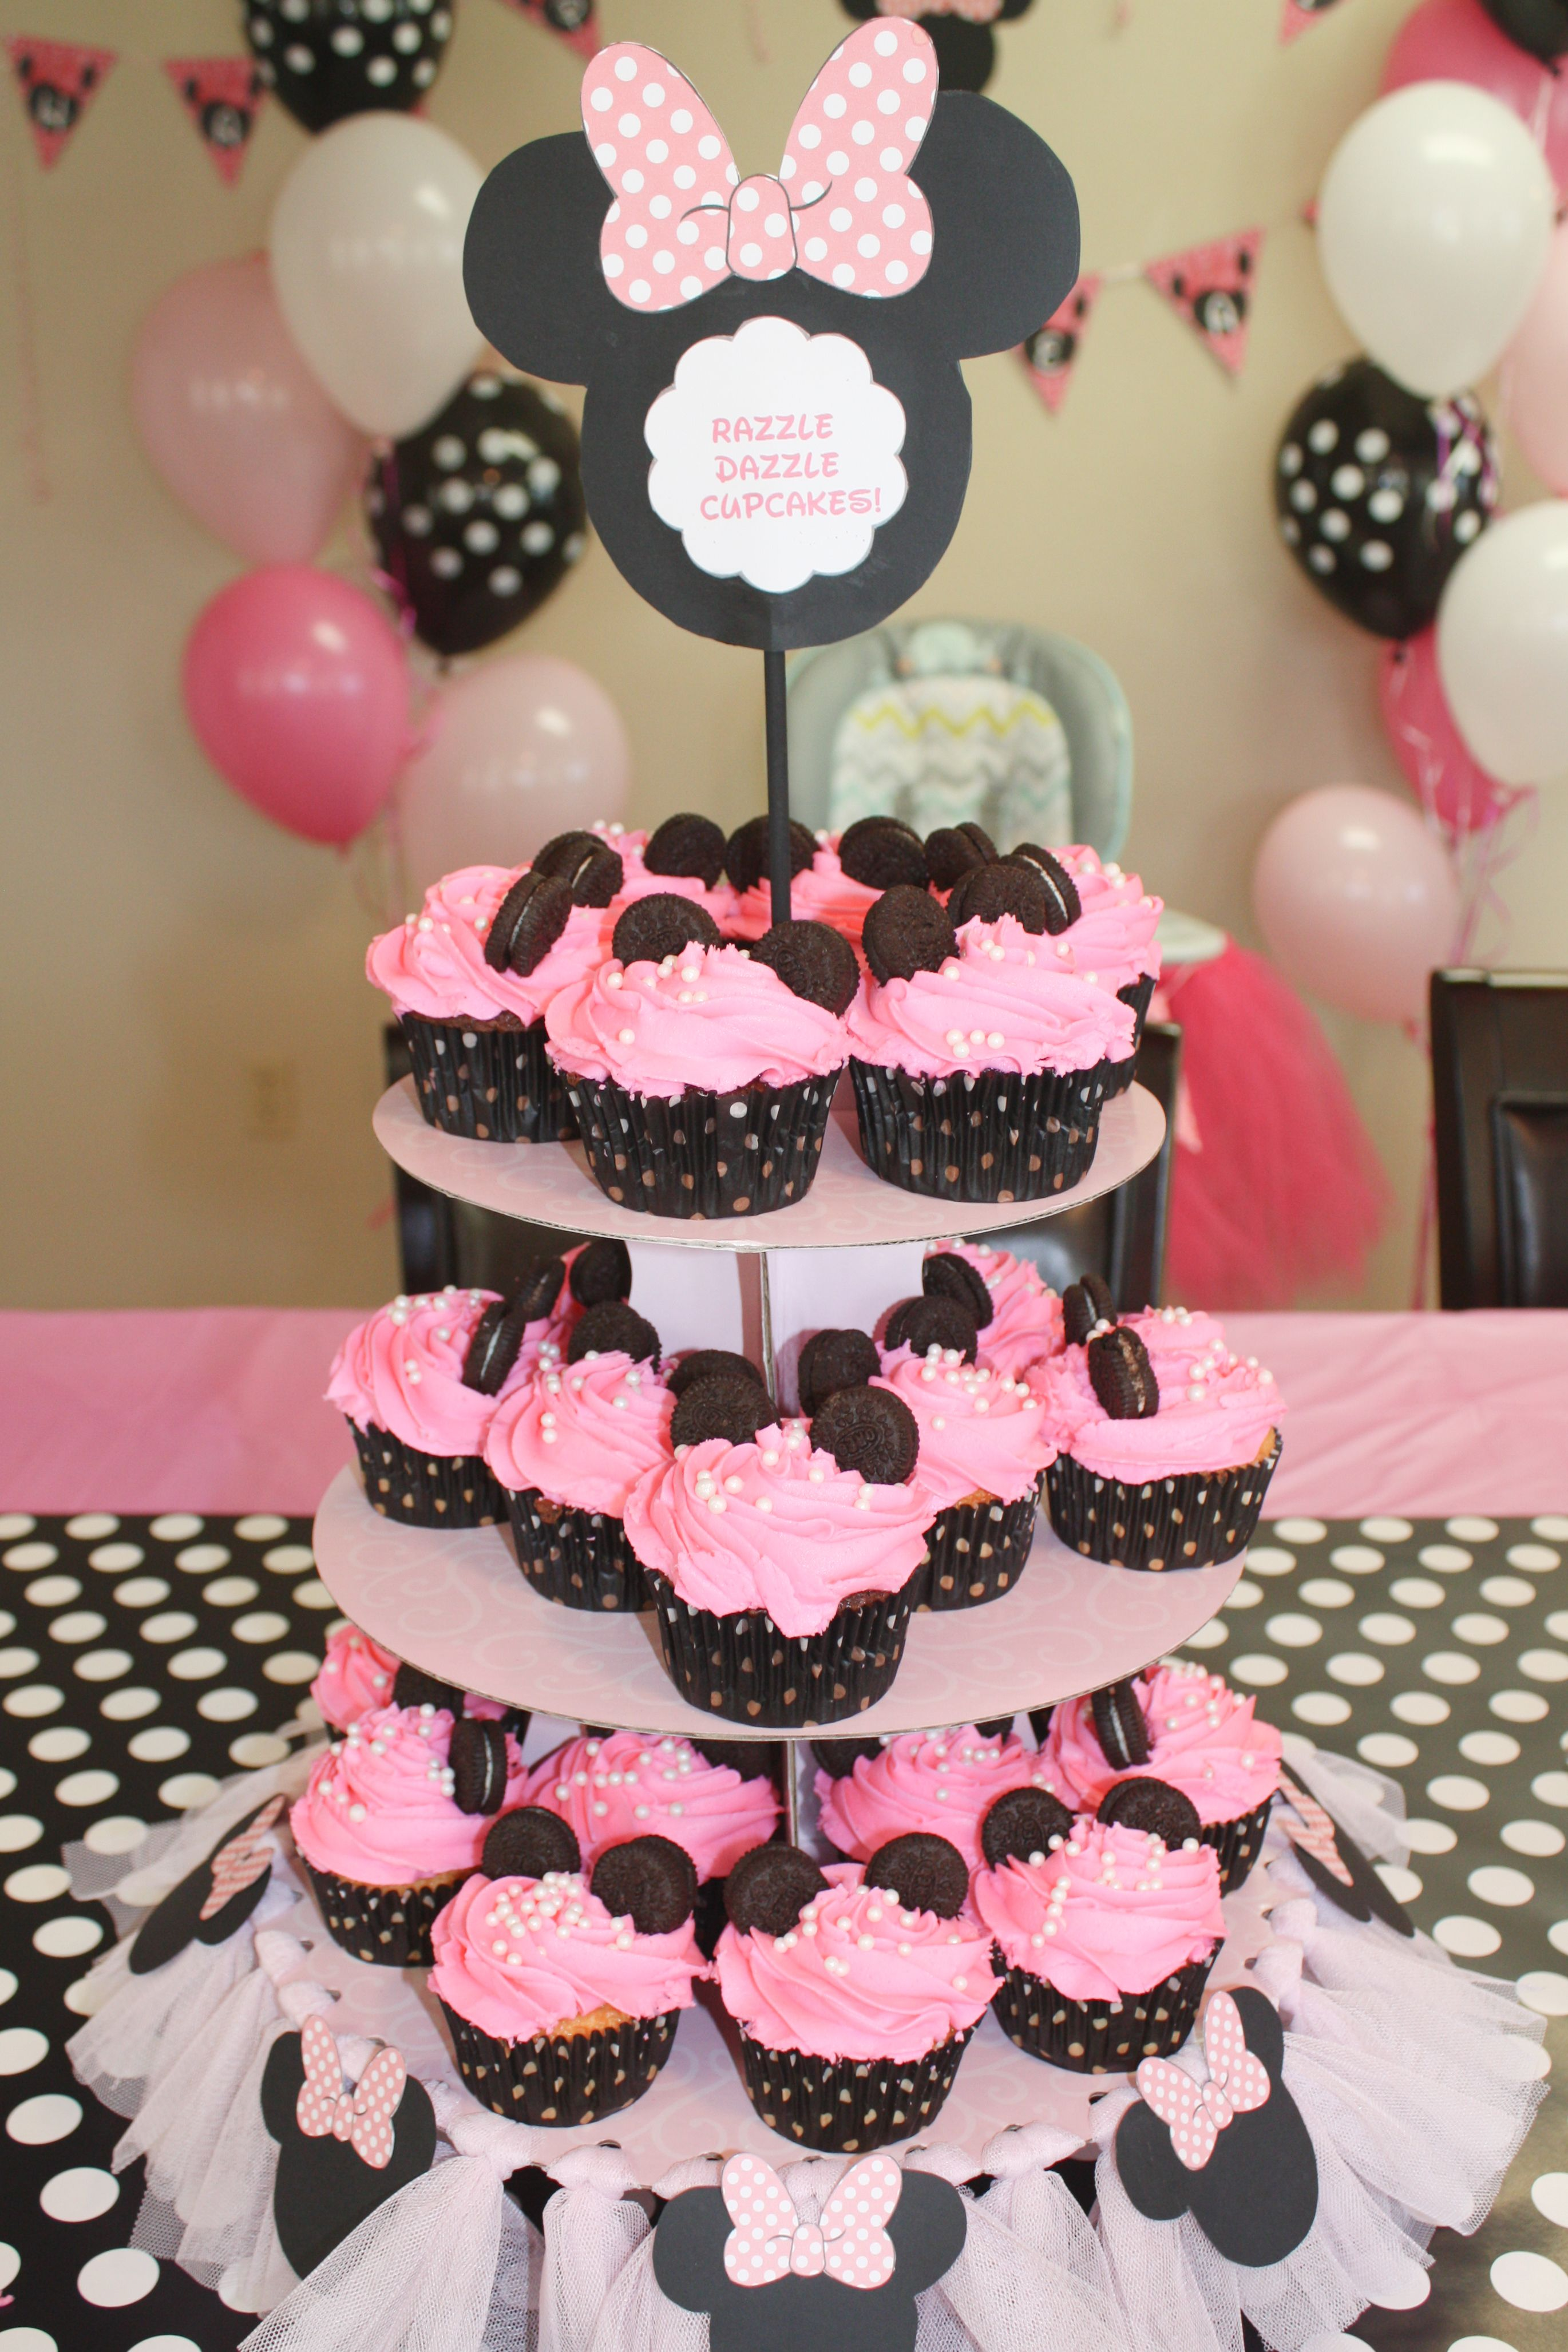 Customized Minnie Mouse cupcake stand with Minnie mouse cupcakes